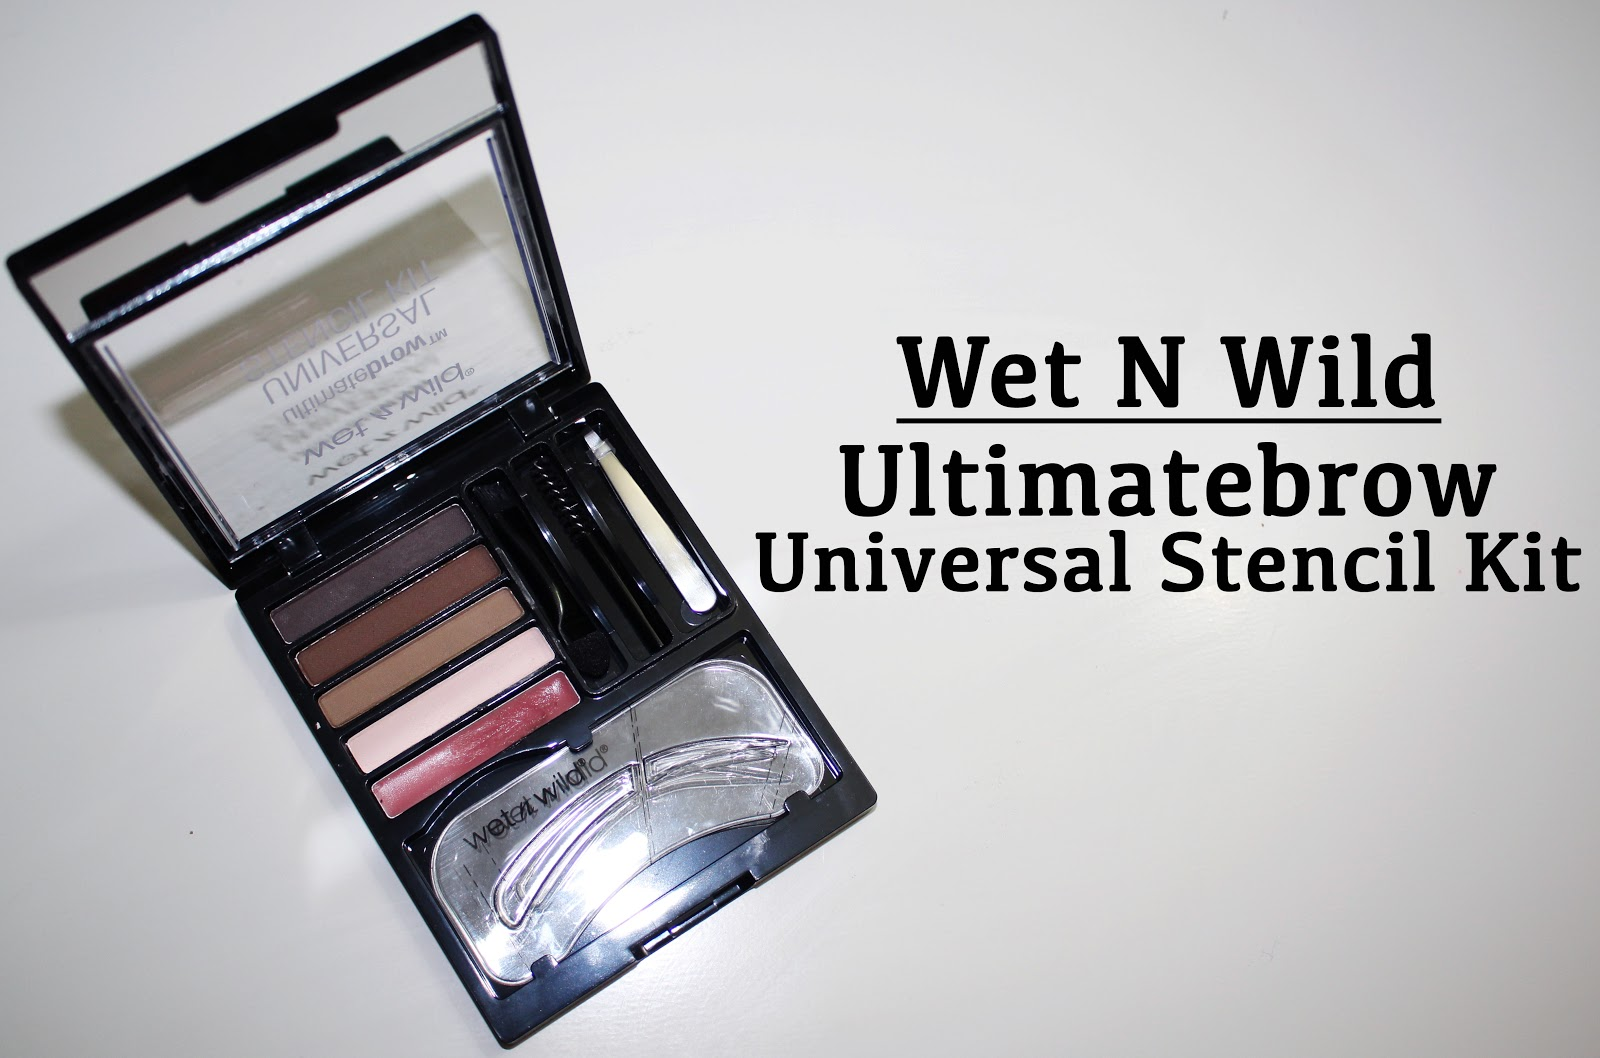 Wet N Wild Eyebrow Kit Image Collections Eye Makeup Ideas For Blue Ultimate Brow Ash Brown Universal Stencil Review